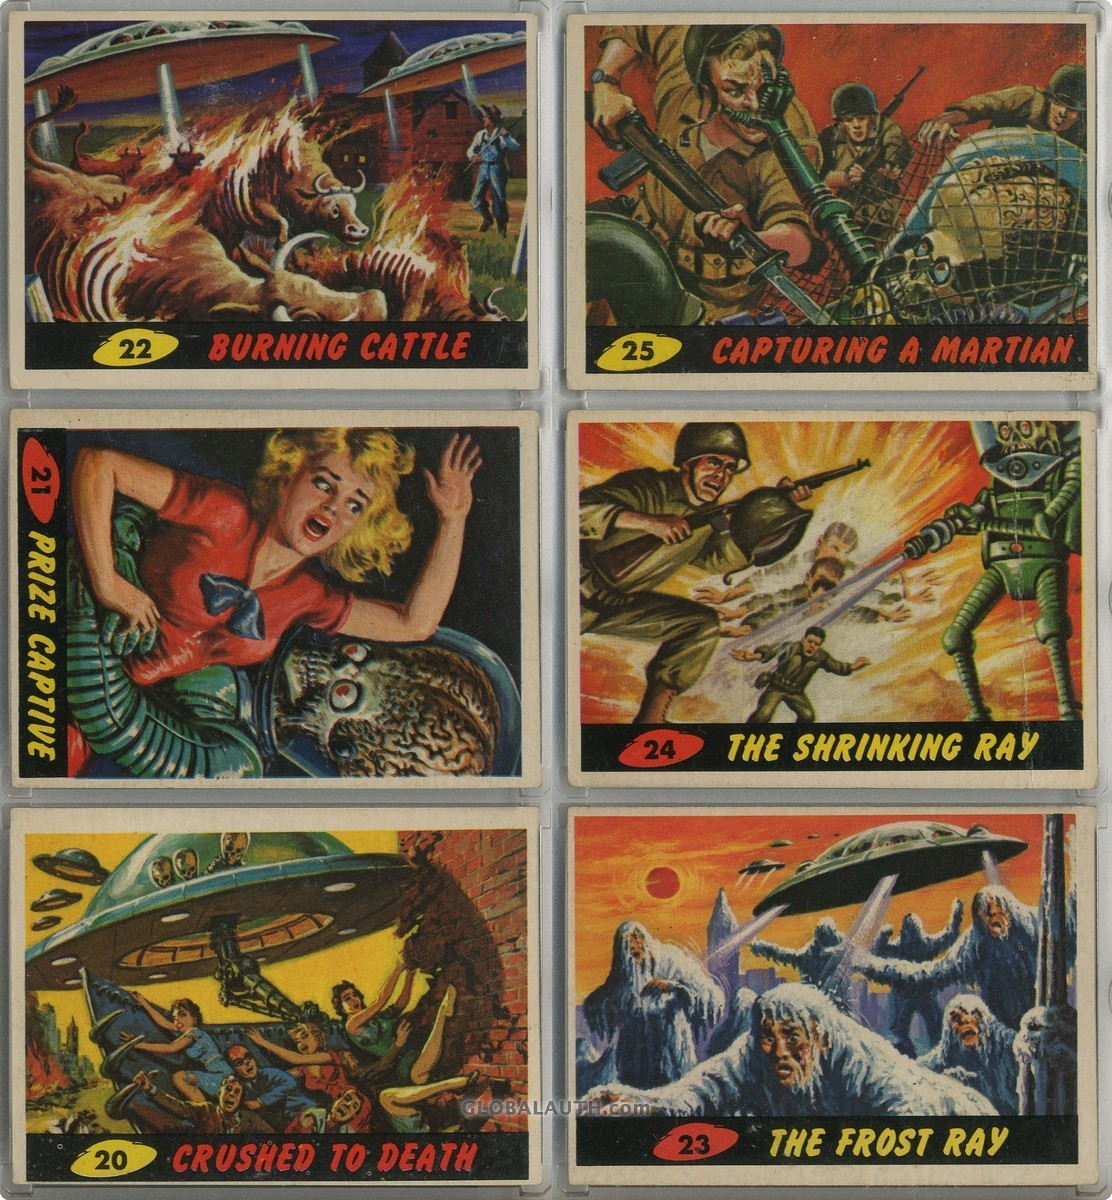 1962-mars-attacks-non-sports-card-set-set-images.jpg, #6